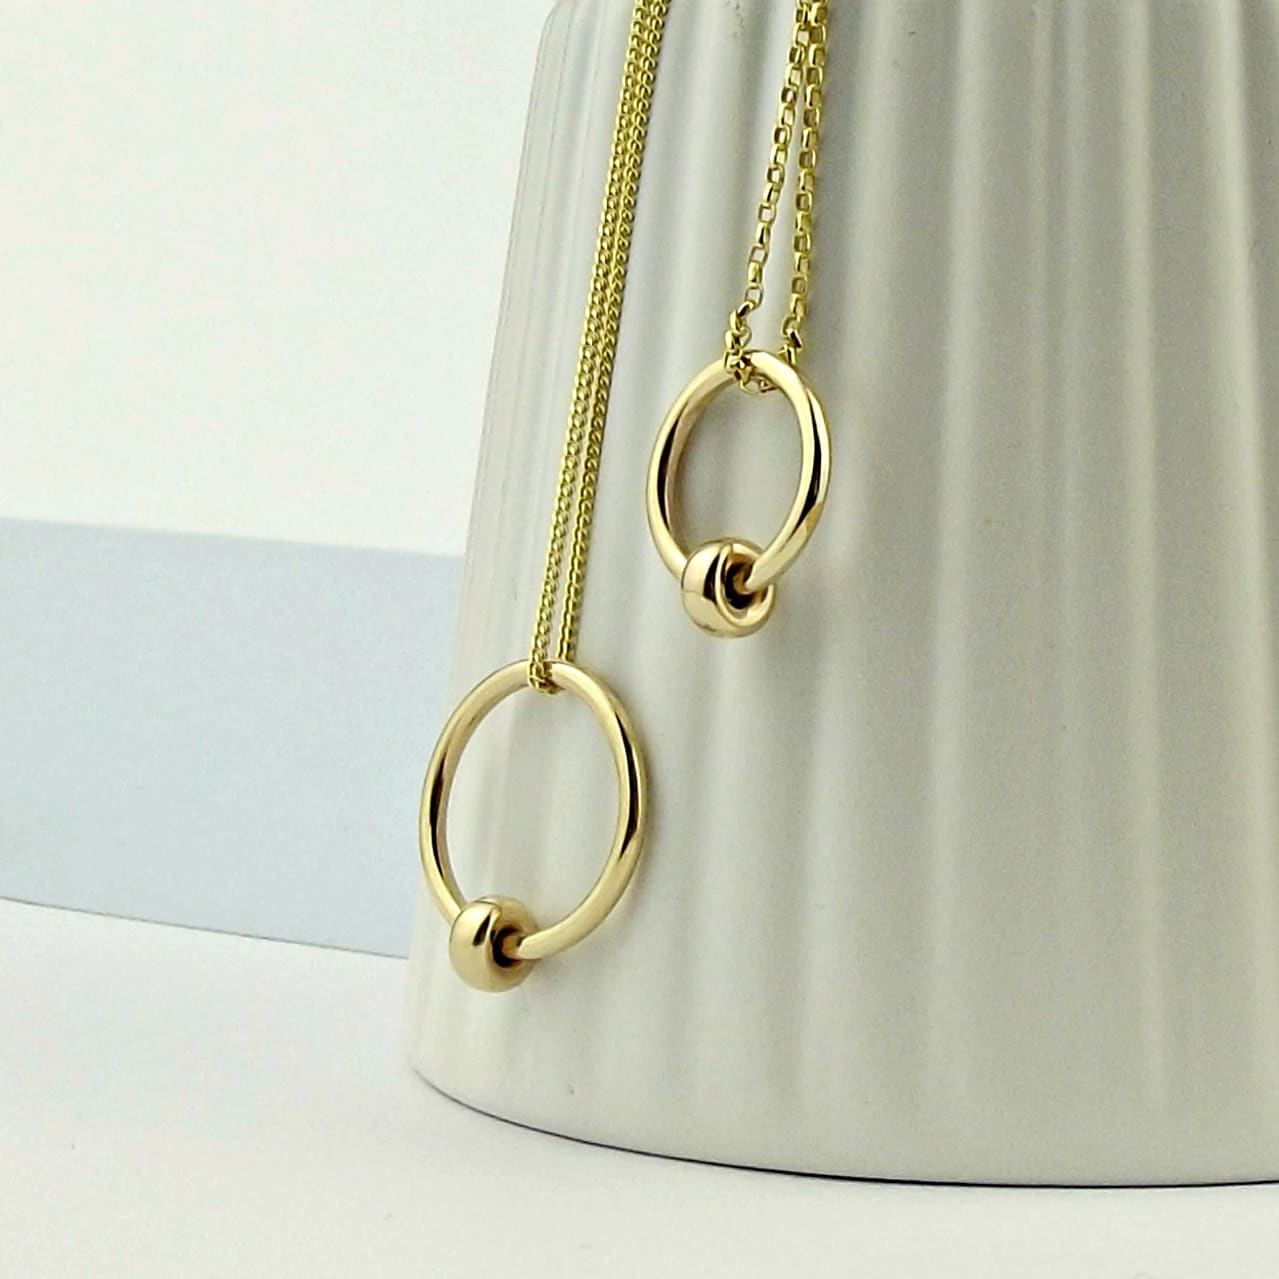 online meridian products simple necklace close charm jewelry gold avenue ave wishbone